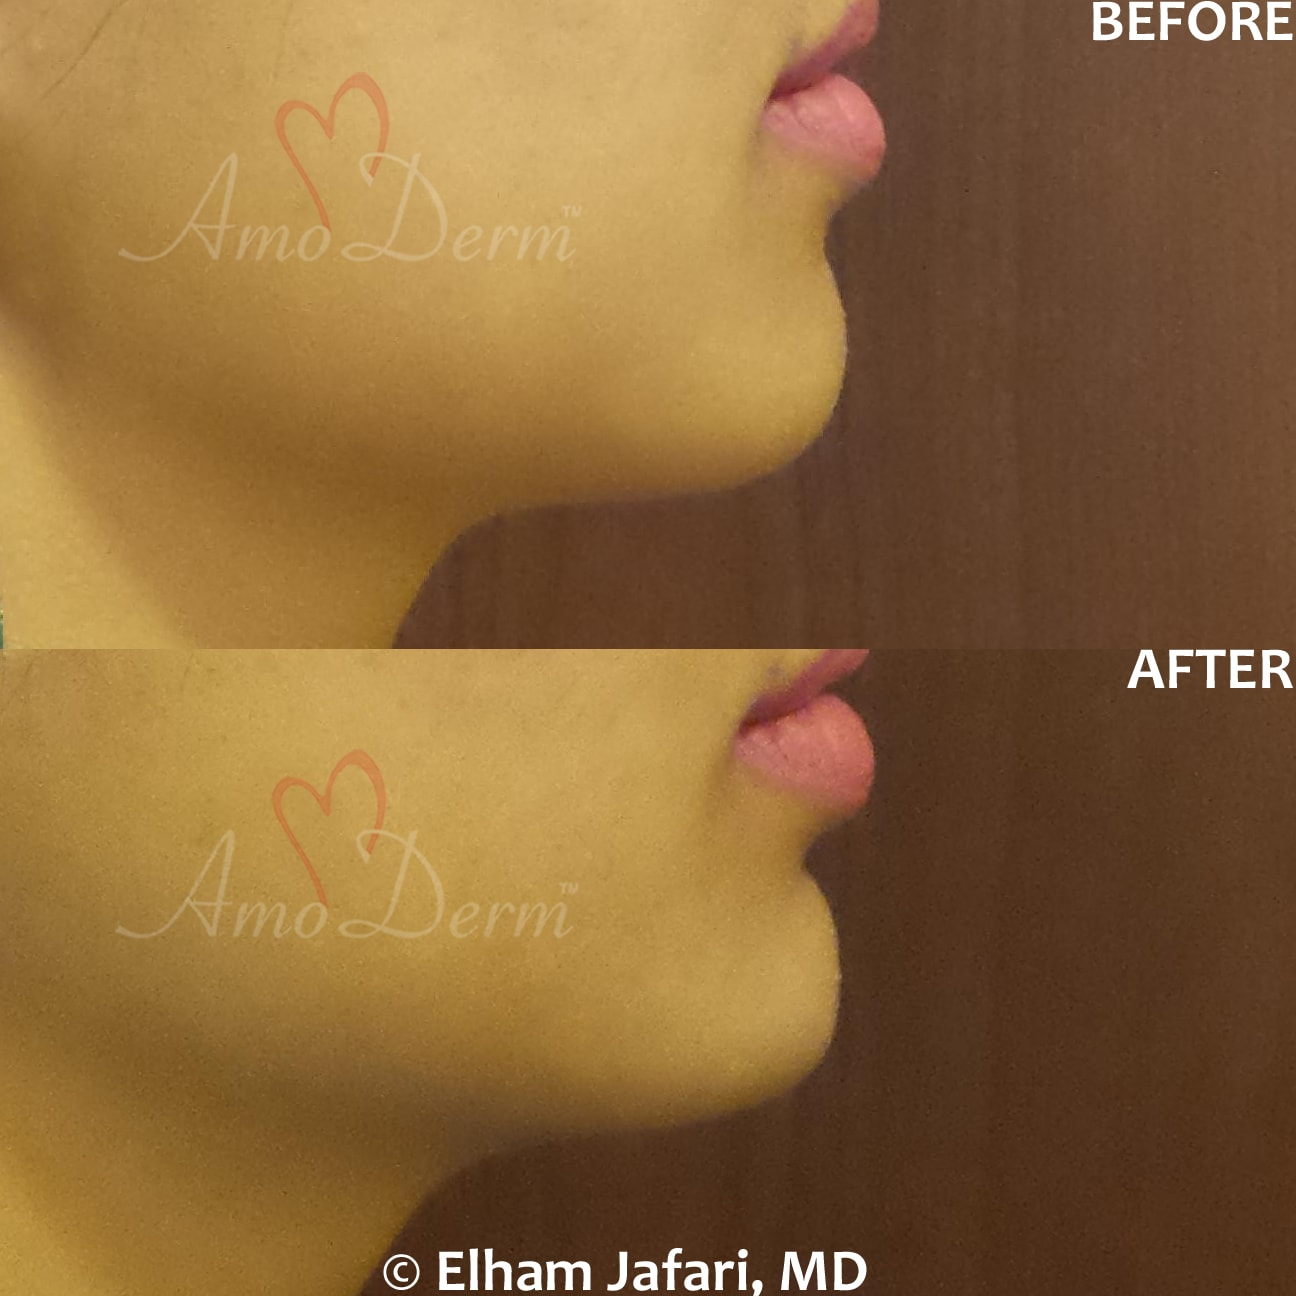 Chin augmentation and enhancement with filler injection